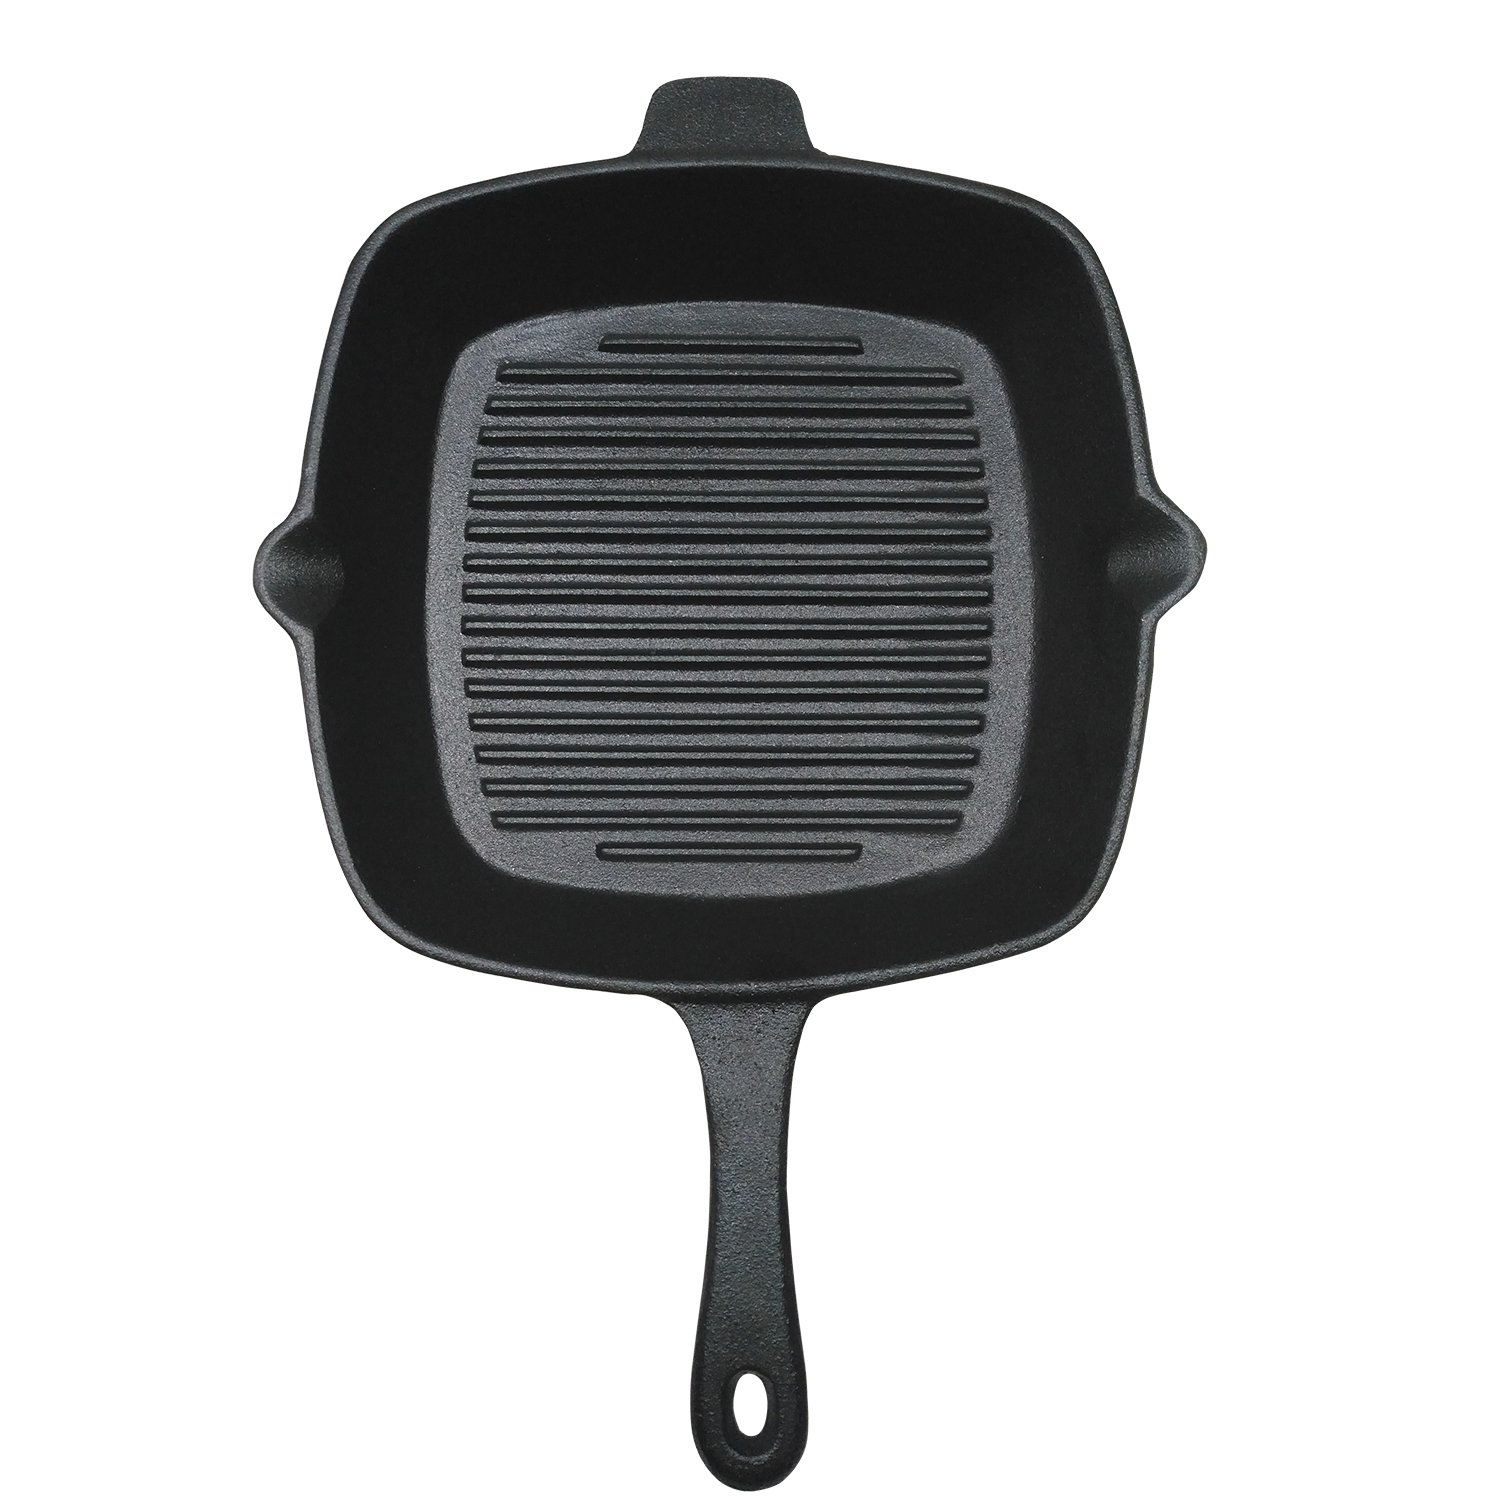 ROYAL KASITE 10.5-Inch Preseasoned Cast Iron Square Grill Pan, Black Scip XG265